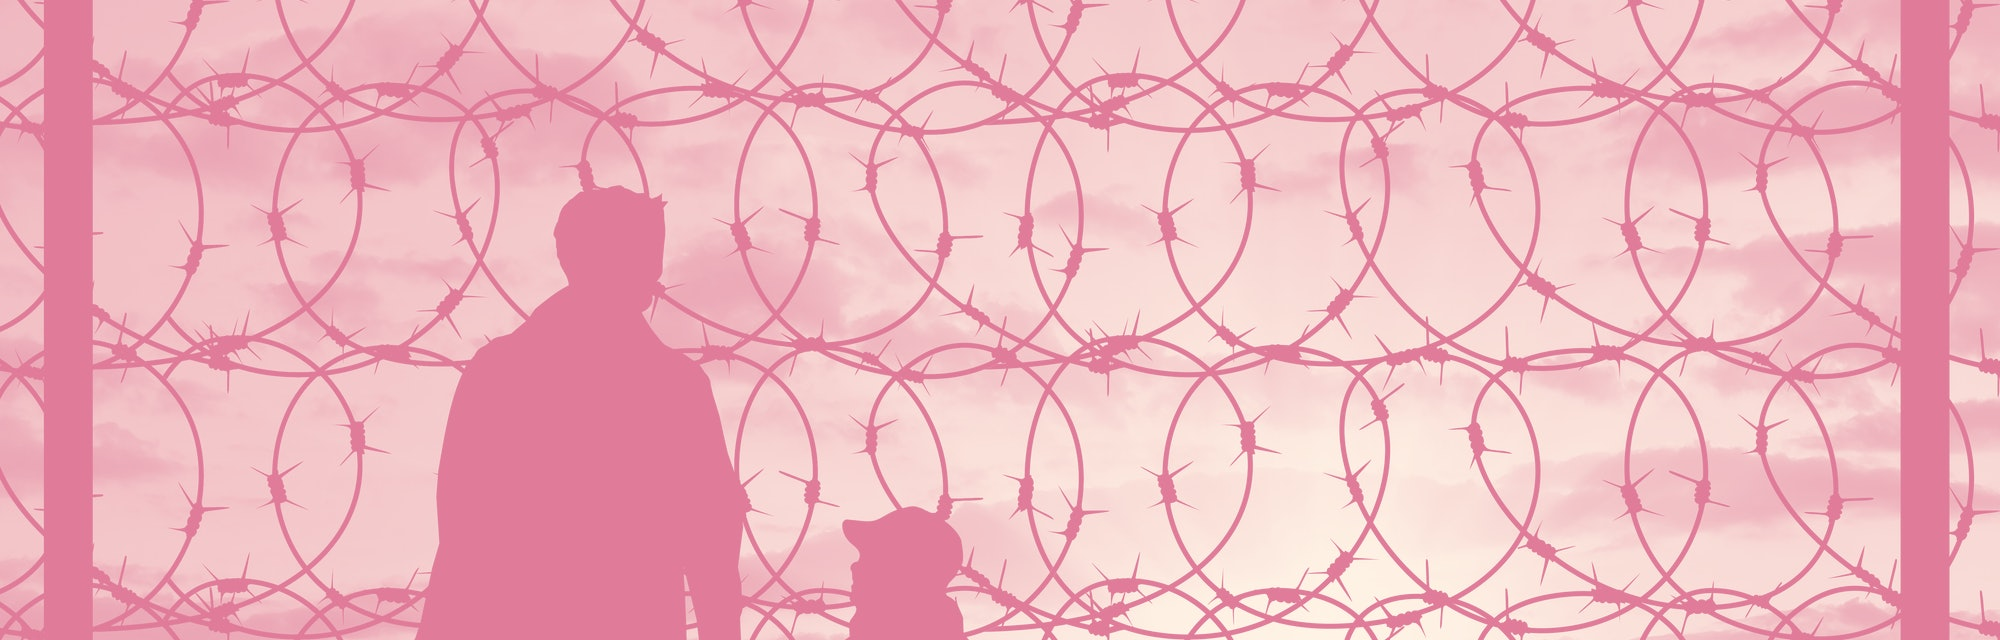 Concept of refugee. Silhouette of a family with a child refugee father near the fence with barbed wire at sunset